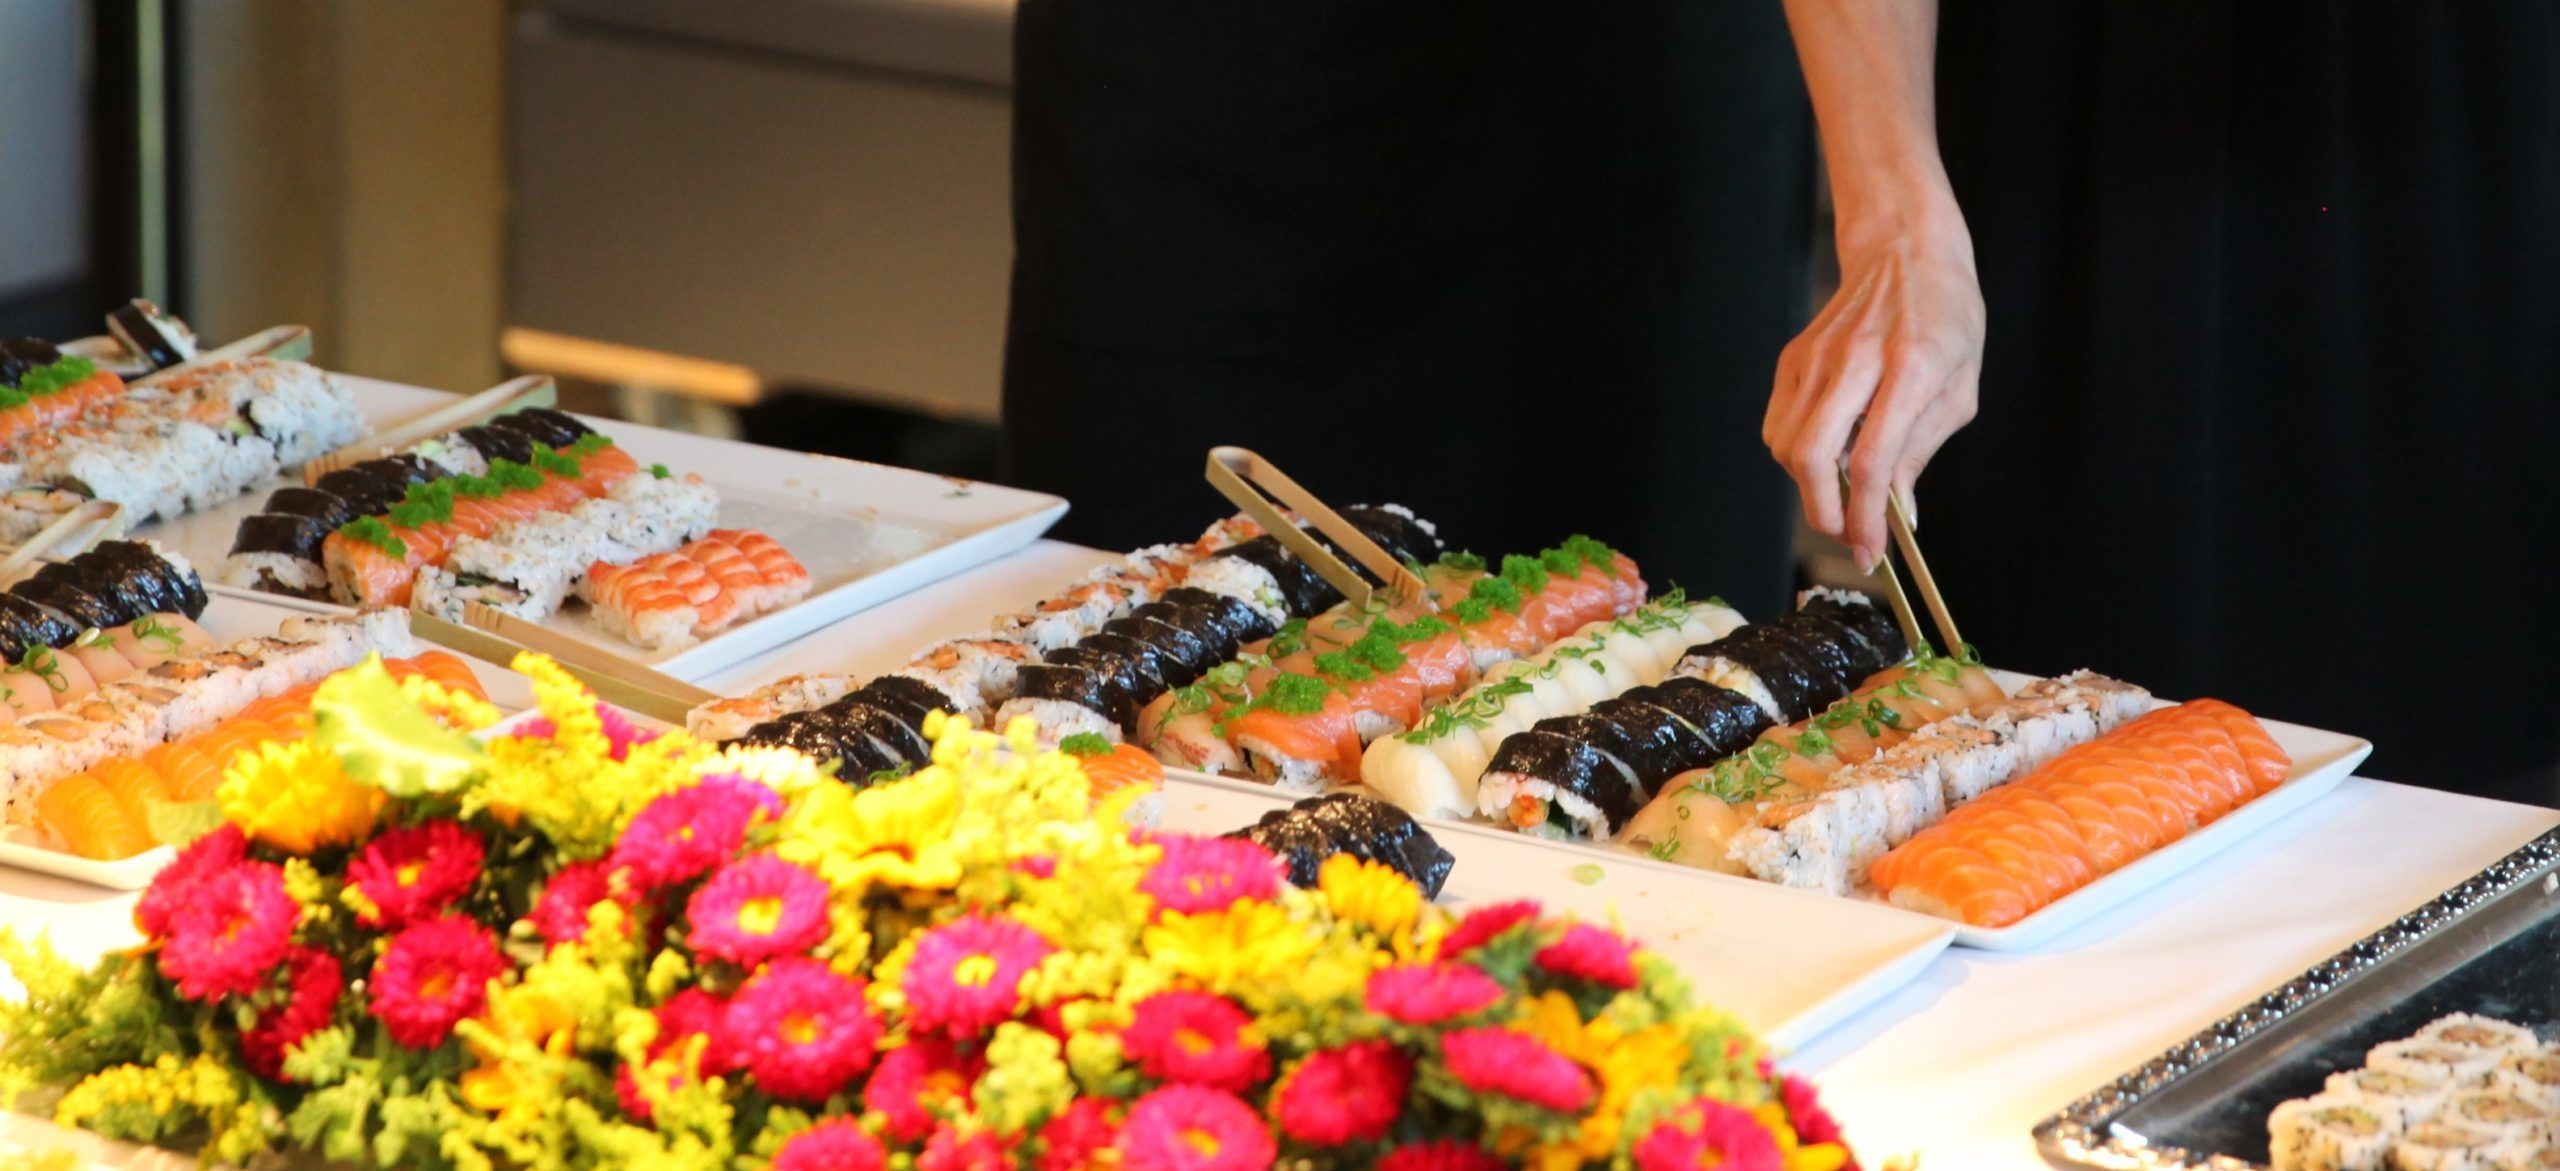 Woman helping herself to sushi at Munchmuseet in 2015. Idemitsu business reception. Photo: IPN